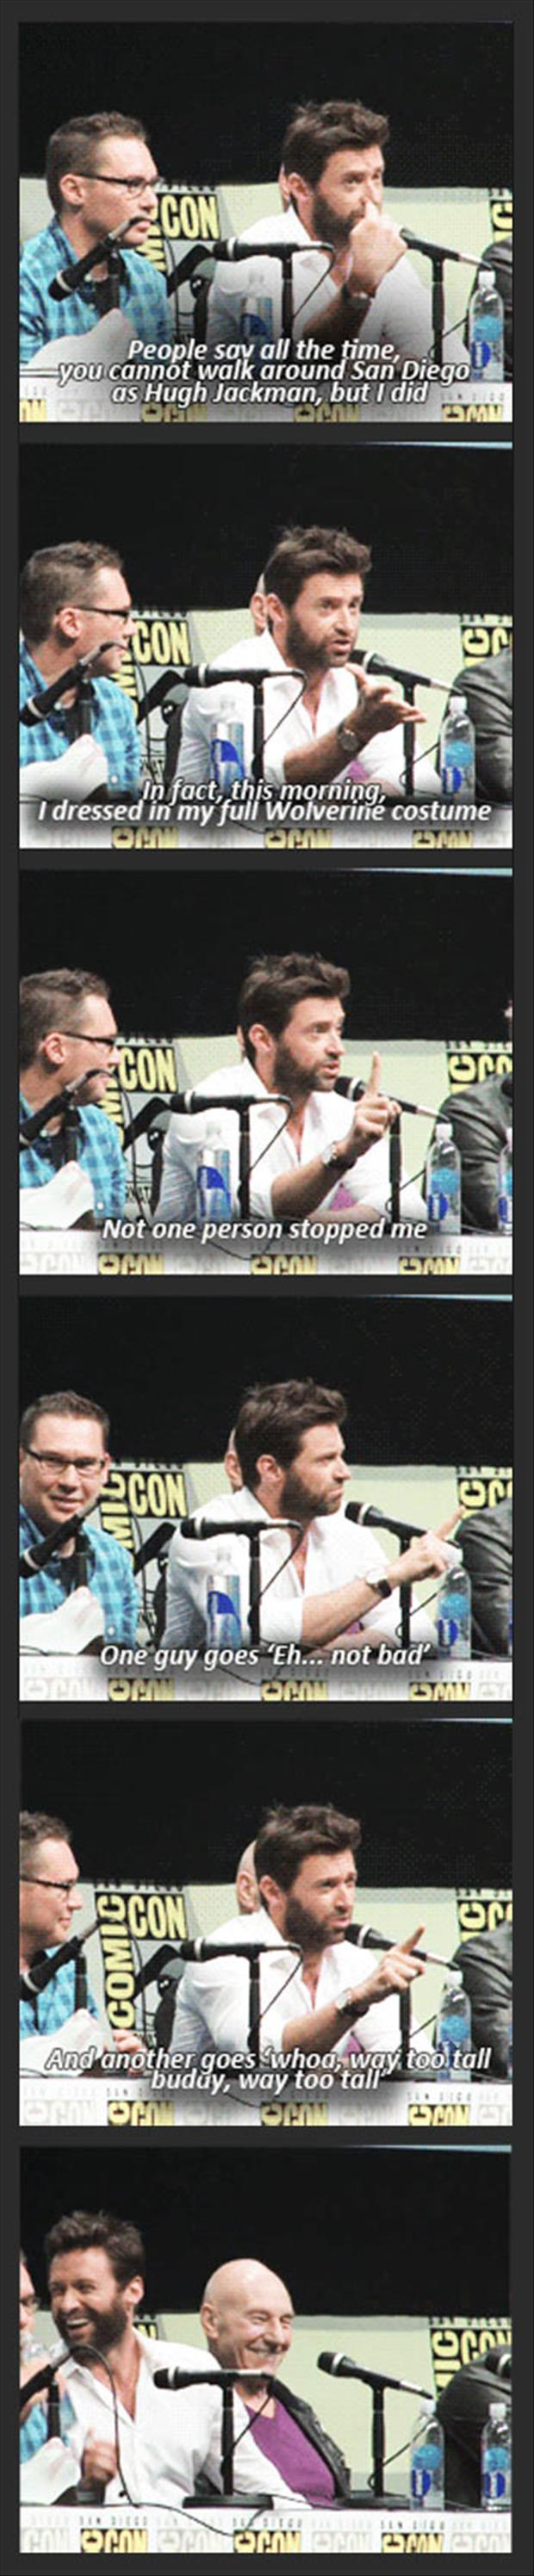 hugh jackman as wolverine at comic con